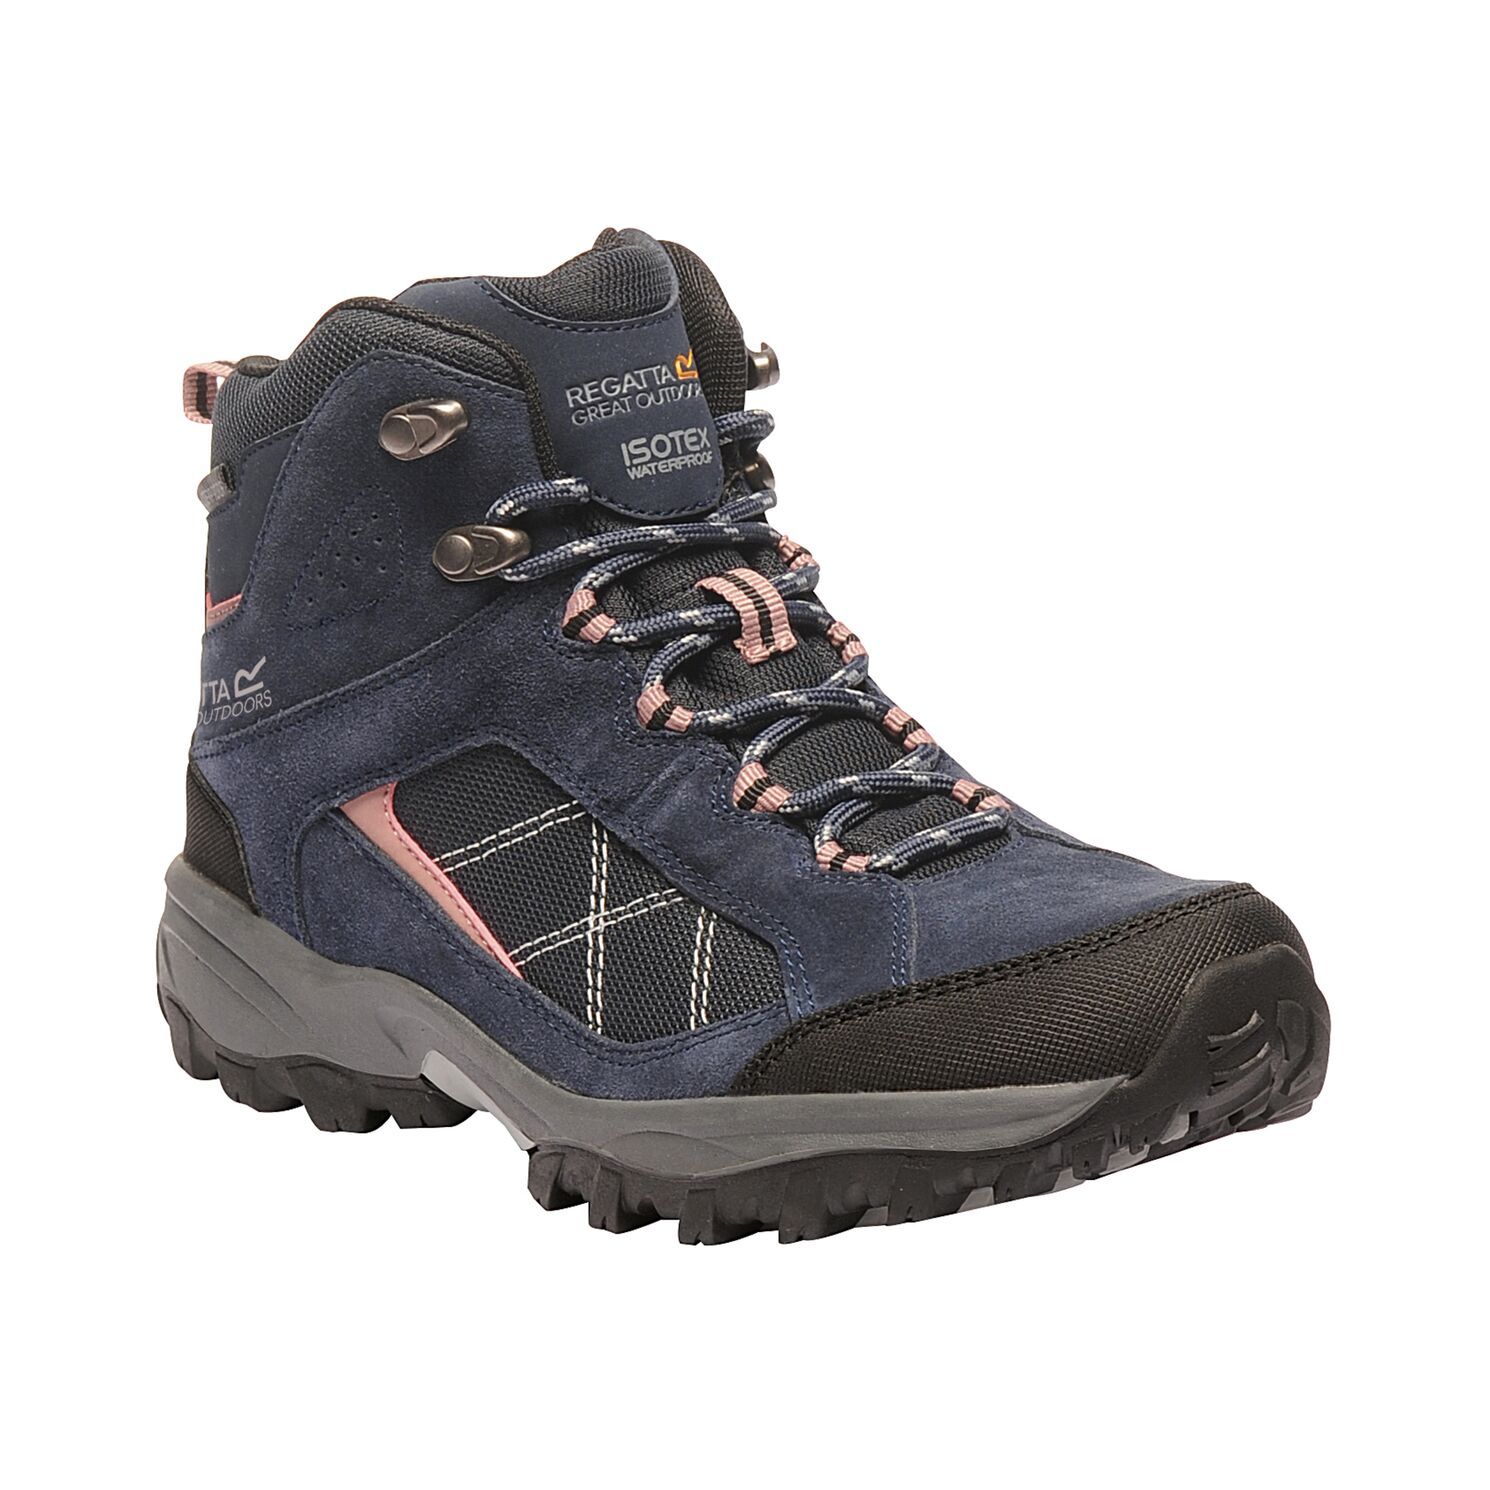 Women's Walking Boots.